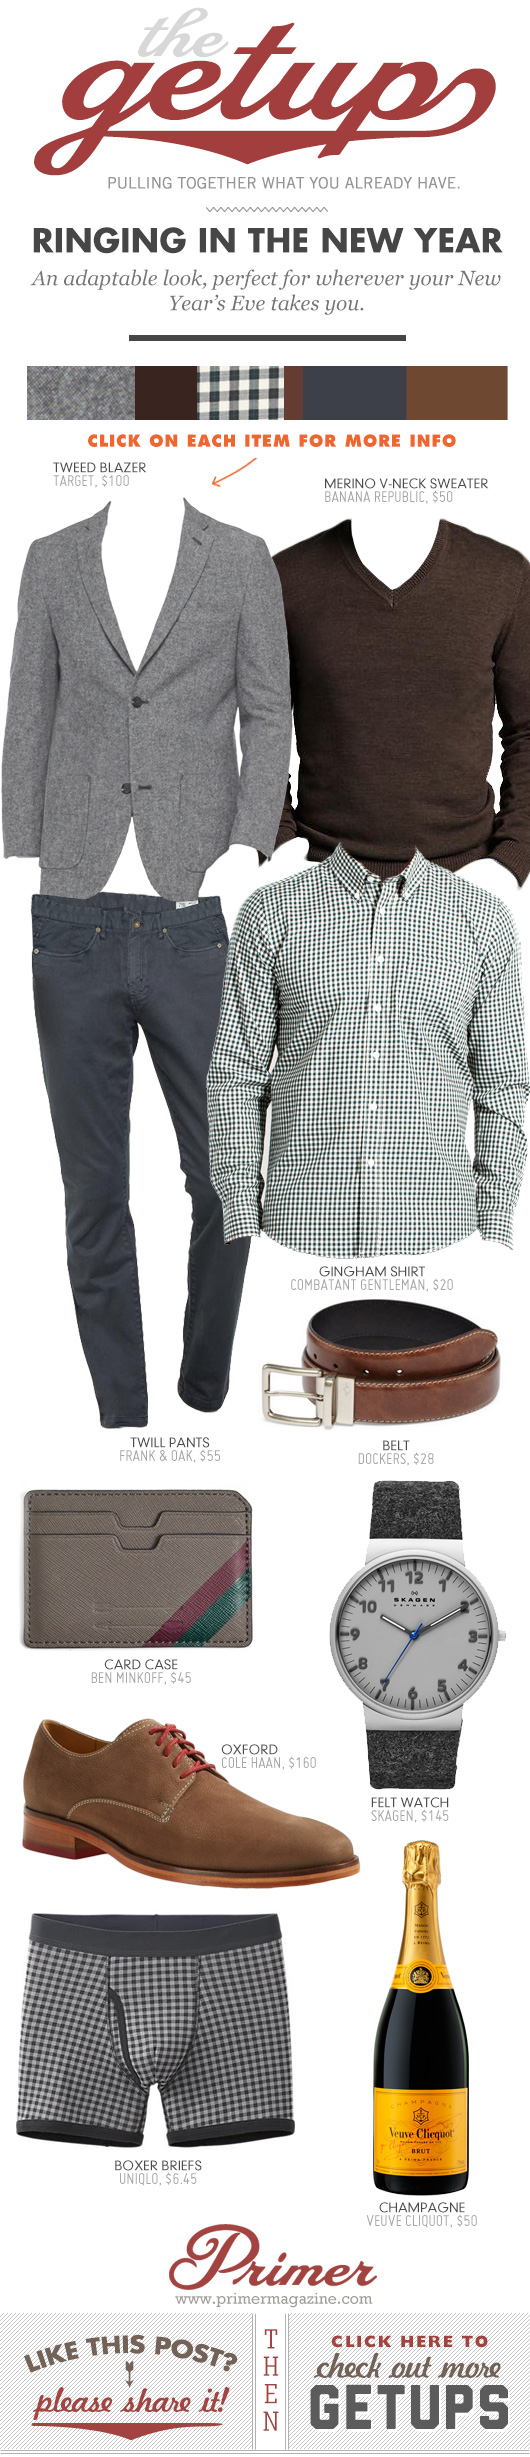 Getup - Ringing in the New Year - blazer with sweater and button up shirt and dress pants